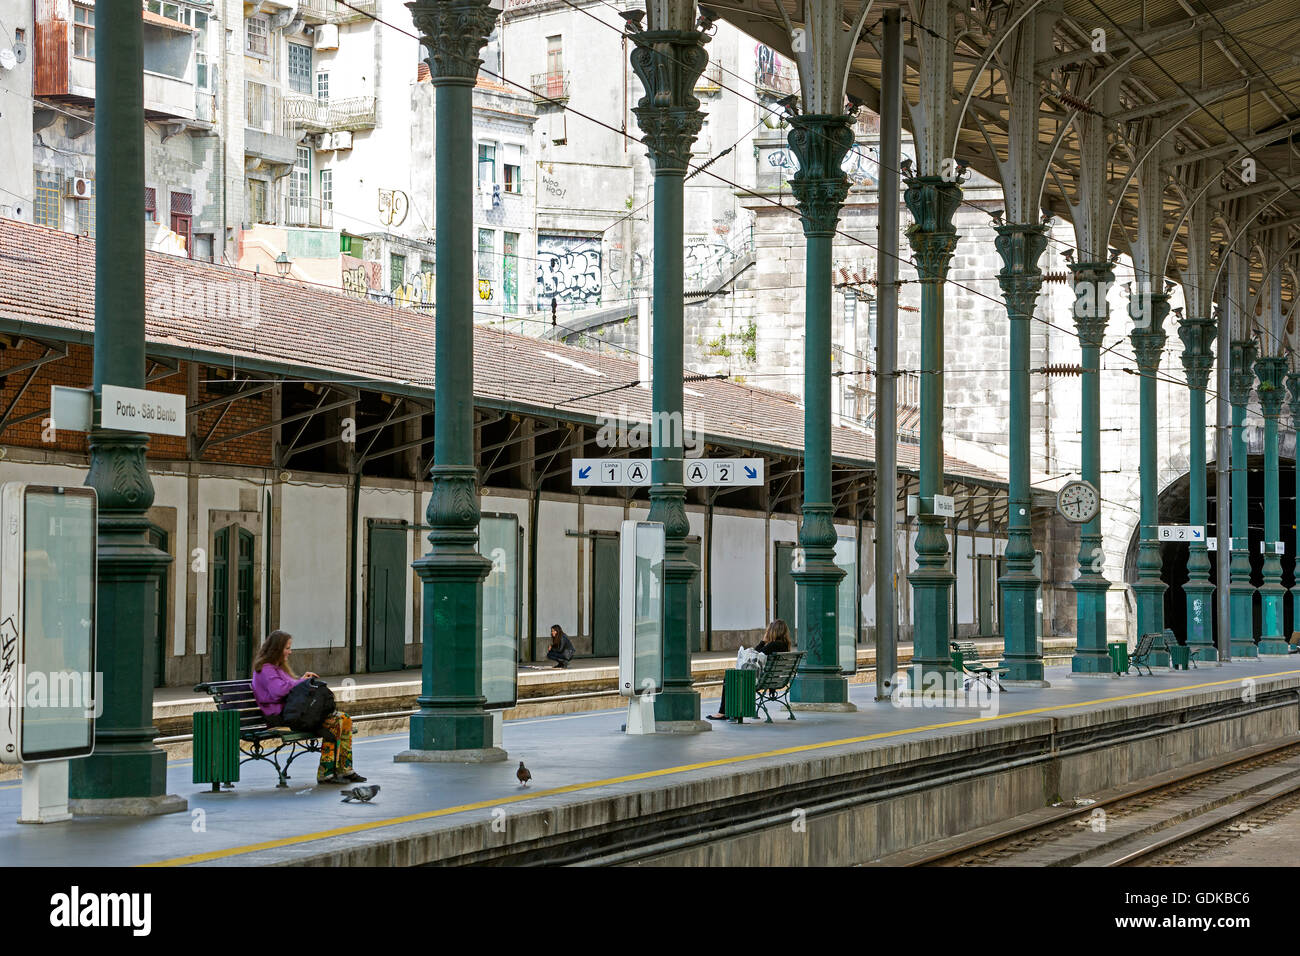 Sao Bento Station Porto, platform, railroad, green cast-iron columns, Porto, District of Porto, Portugal, Europe, - Stock Image